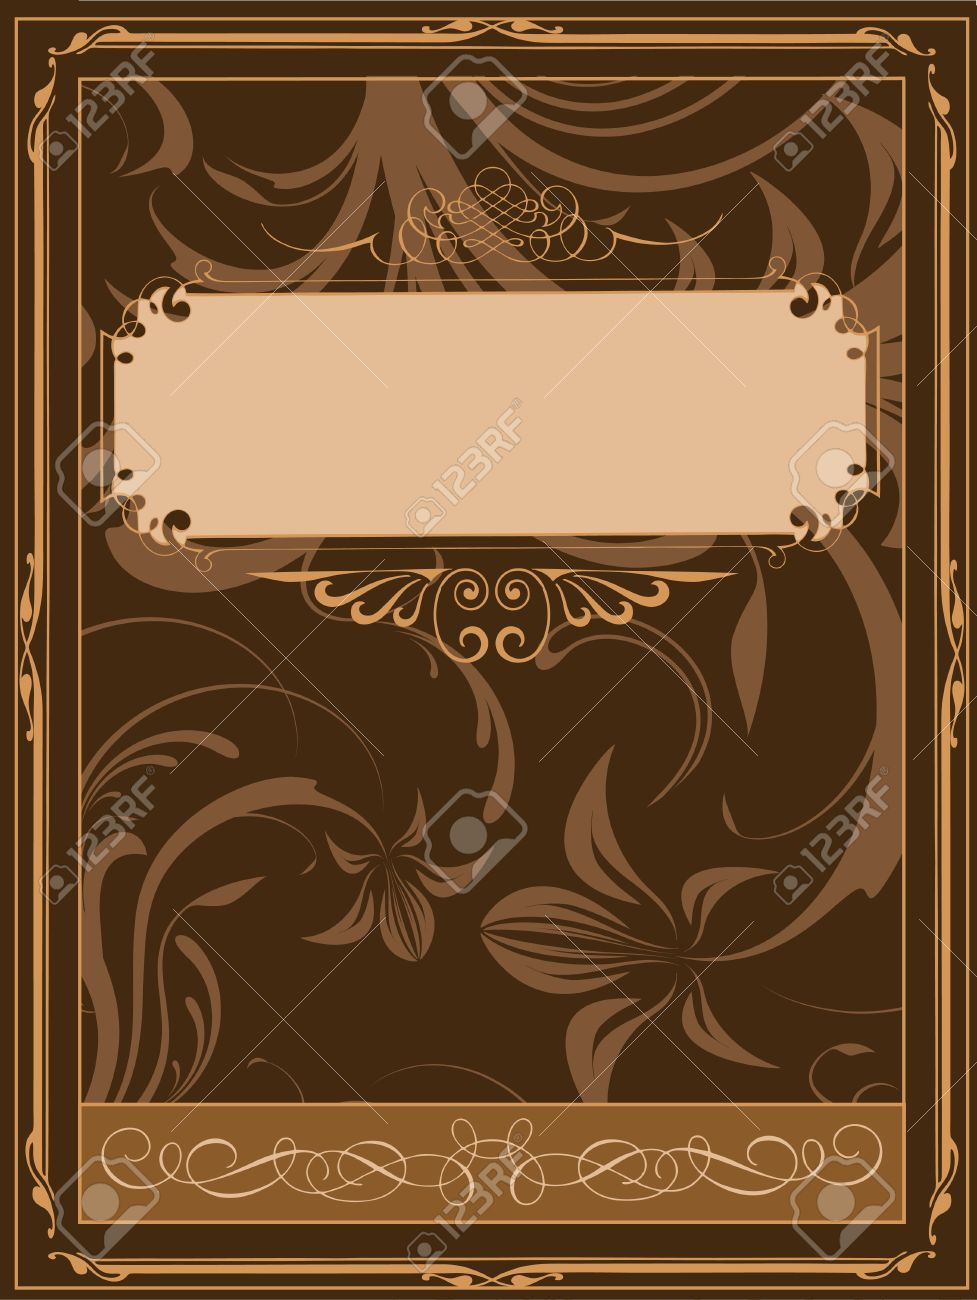 Old Book Cover Vector Illustration Stock Photo, Picture And ...